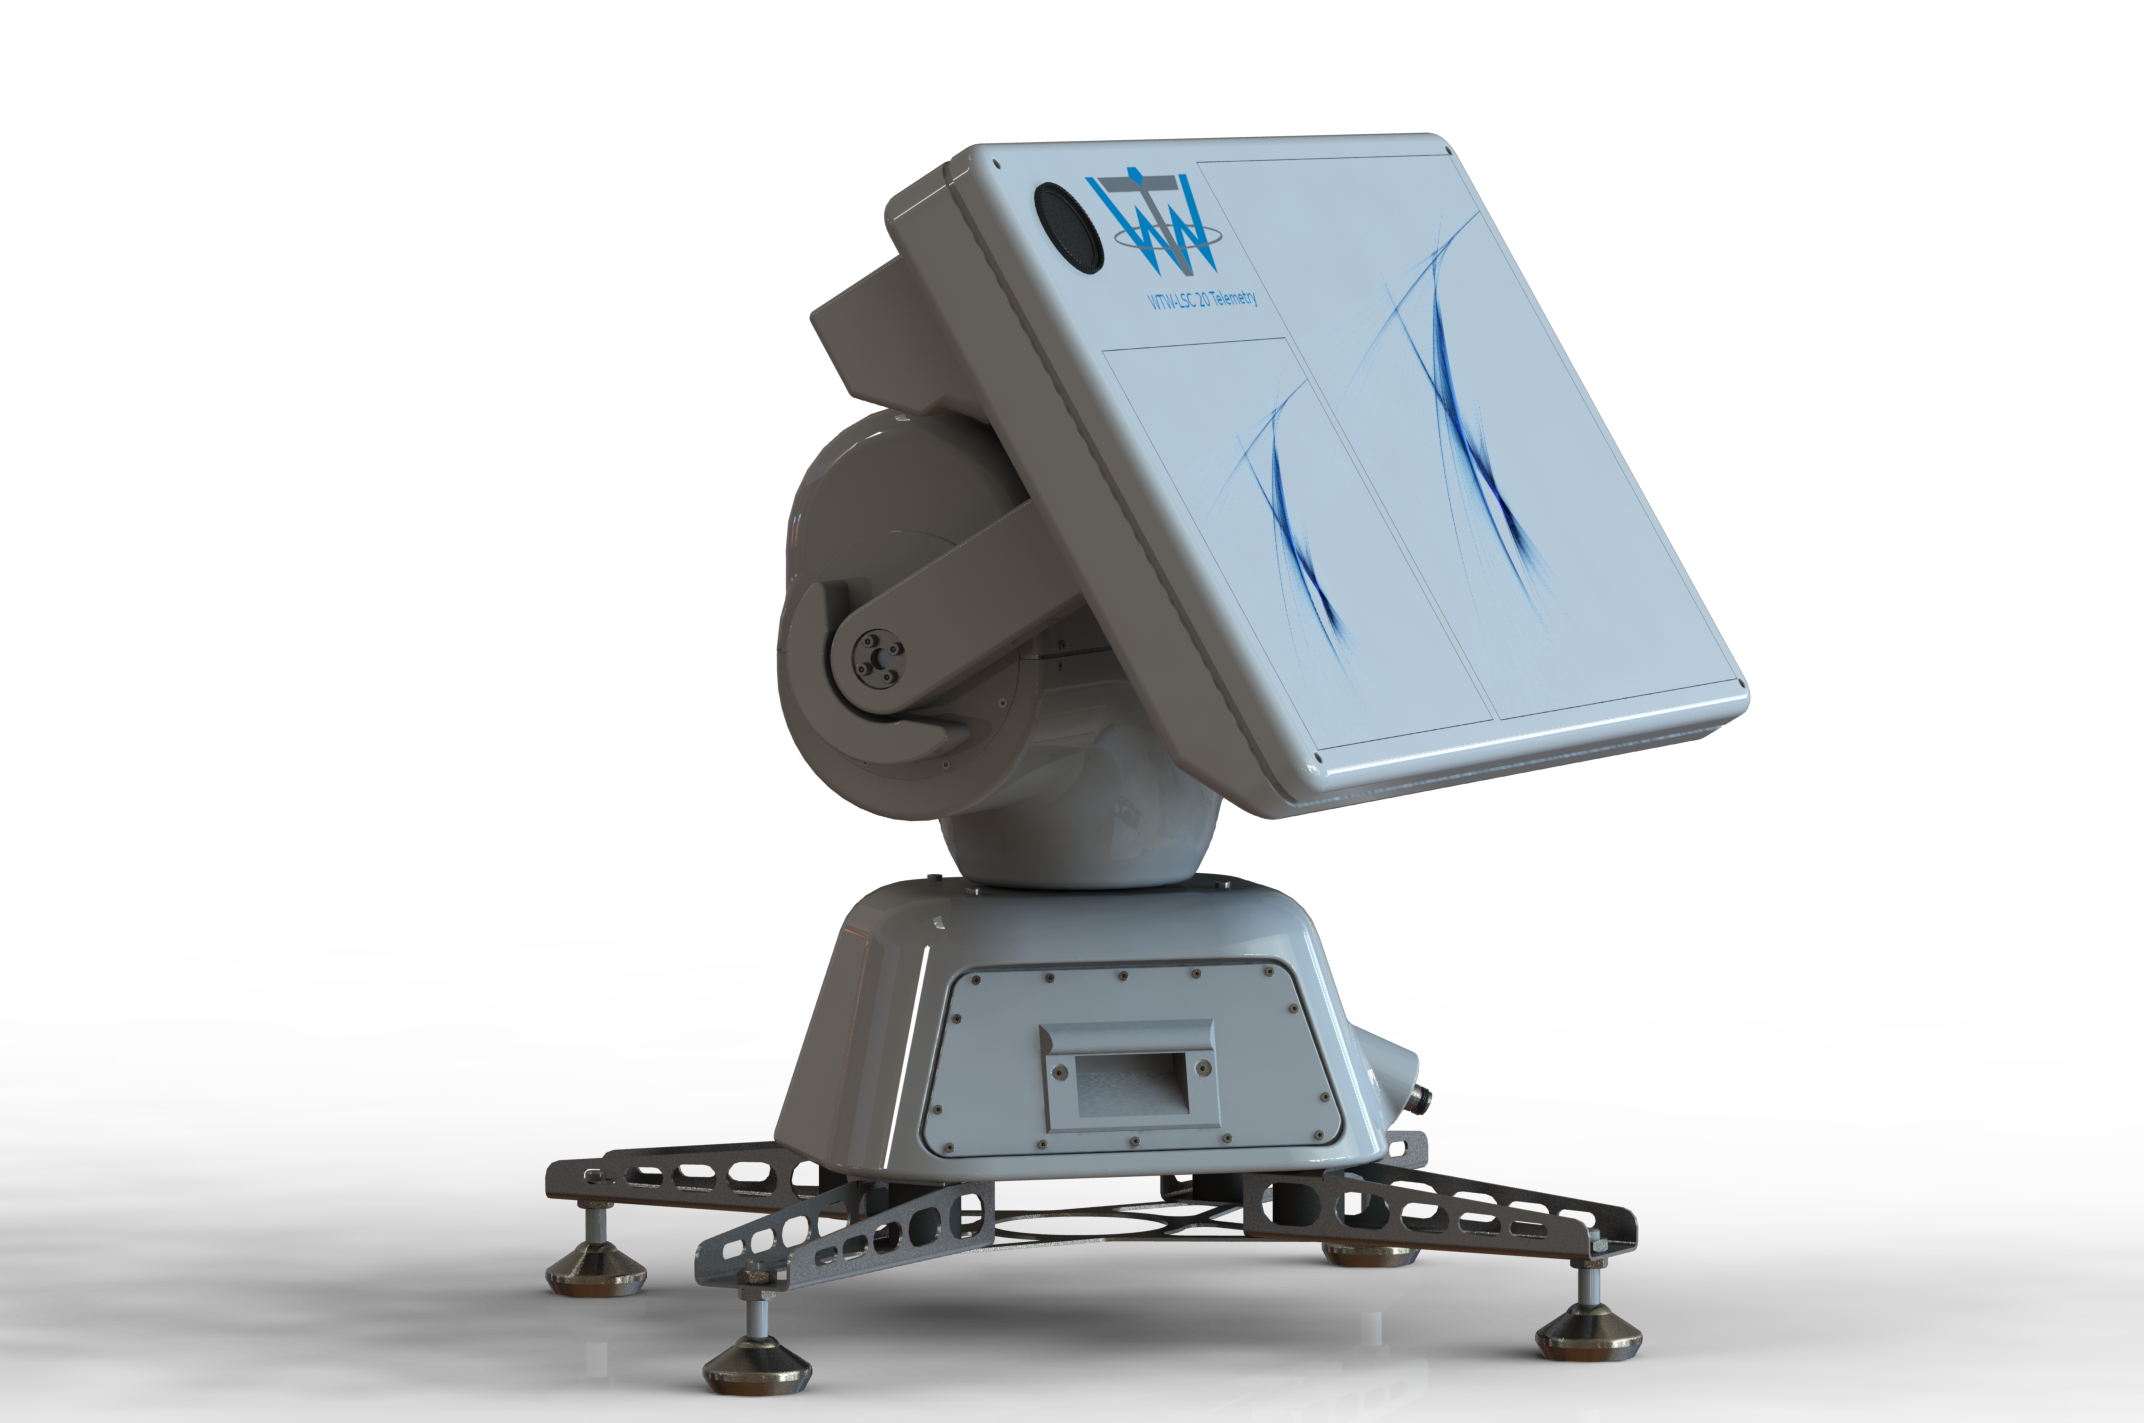 tracku, Author at WTW Autotracking Telemetry Antennas - Made